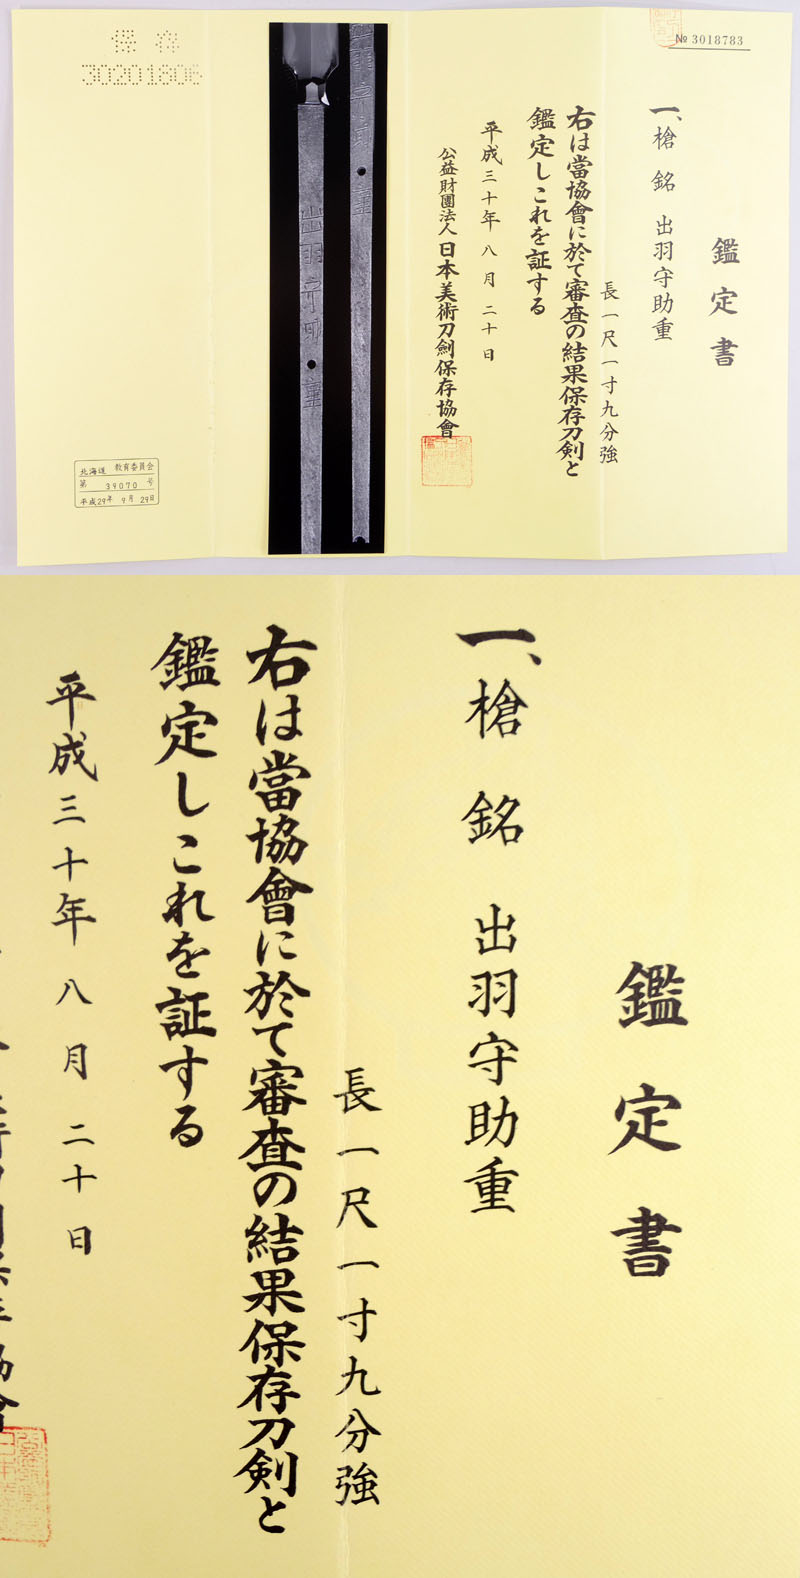 出羽守助重 Picture of Certificate